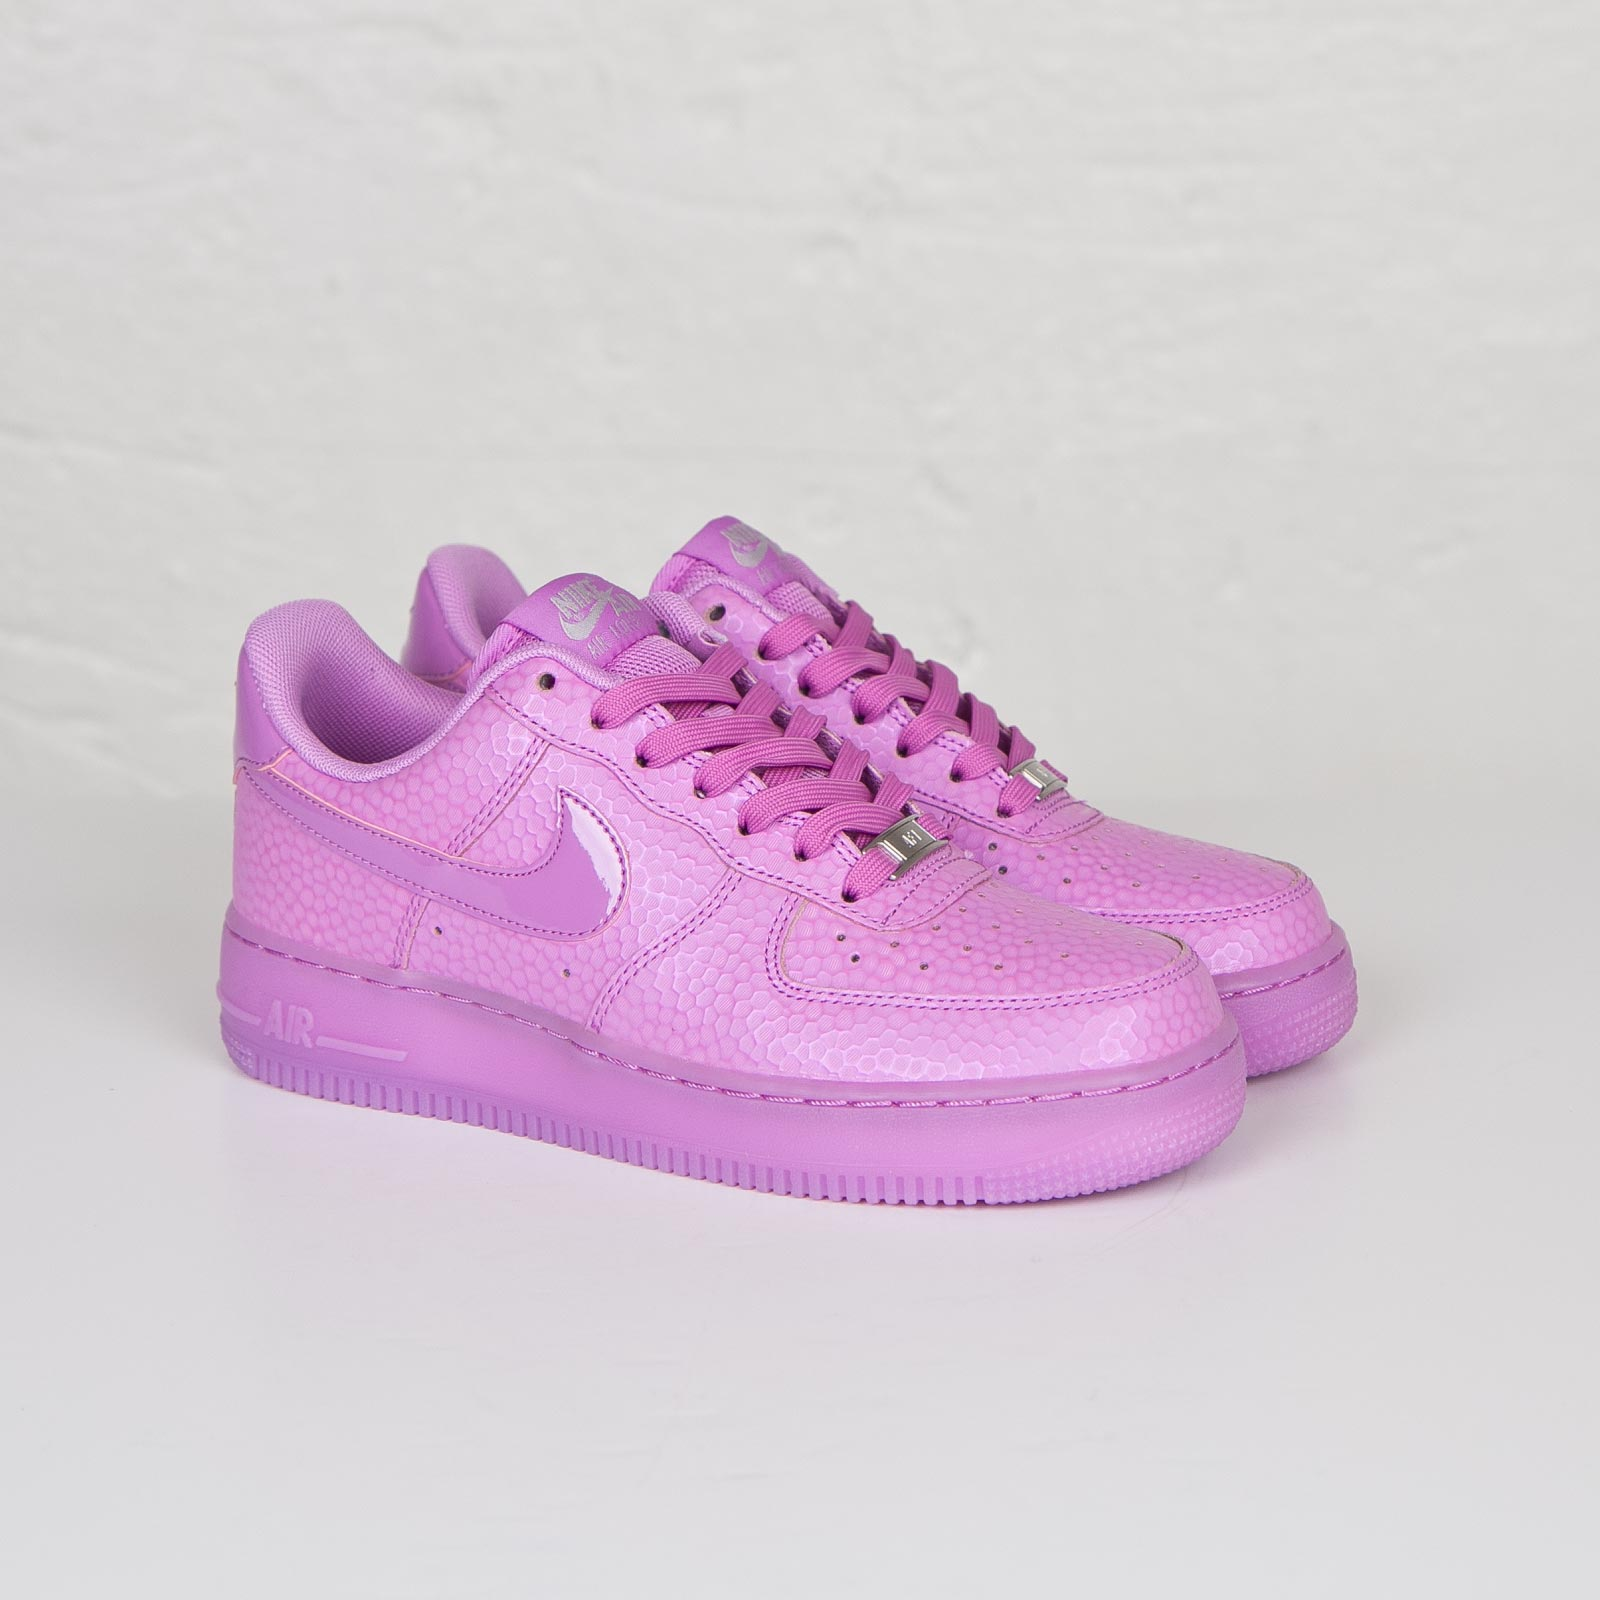 Nike Air Force 1'07 premium sneakers in mauve